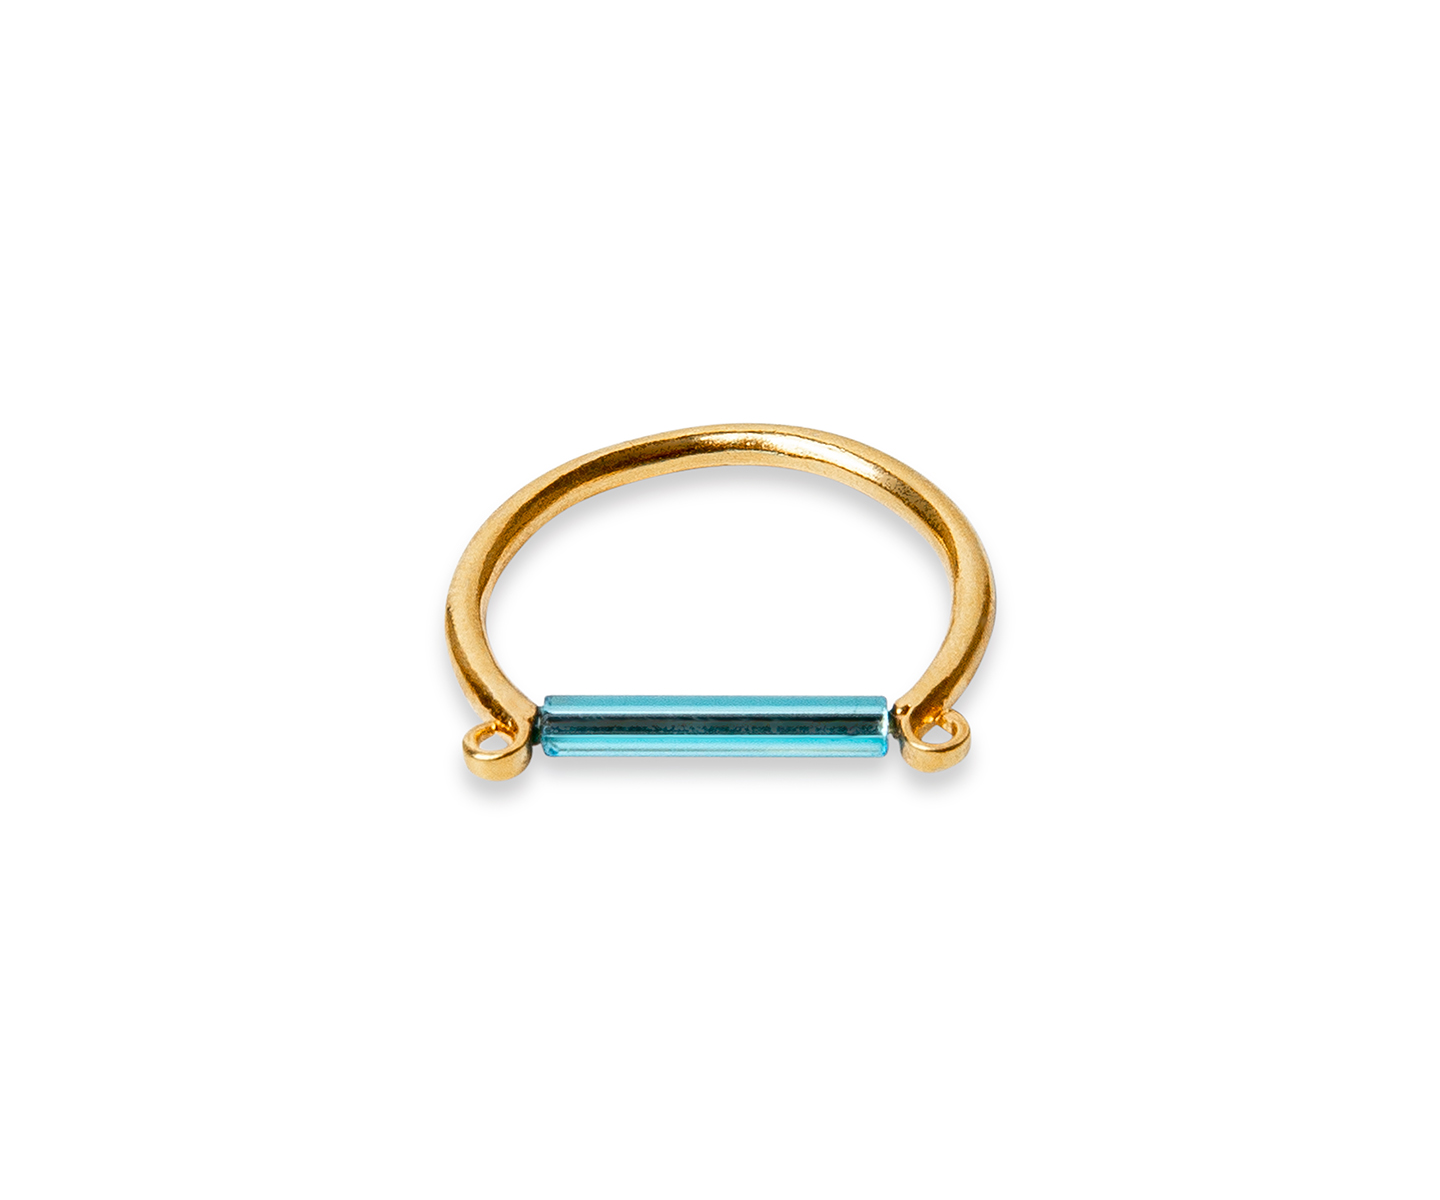 Gold ring with minimalist neon blue bar